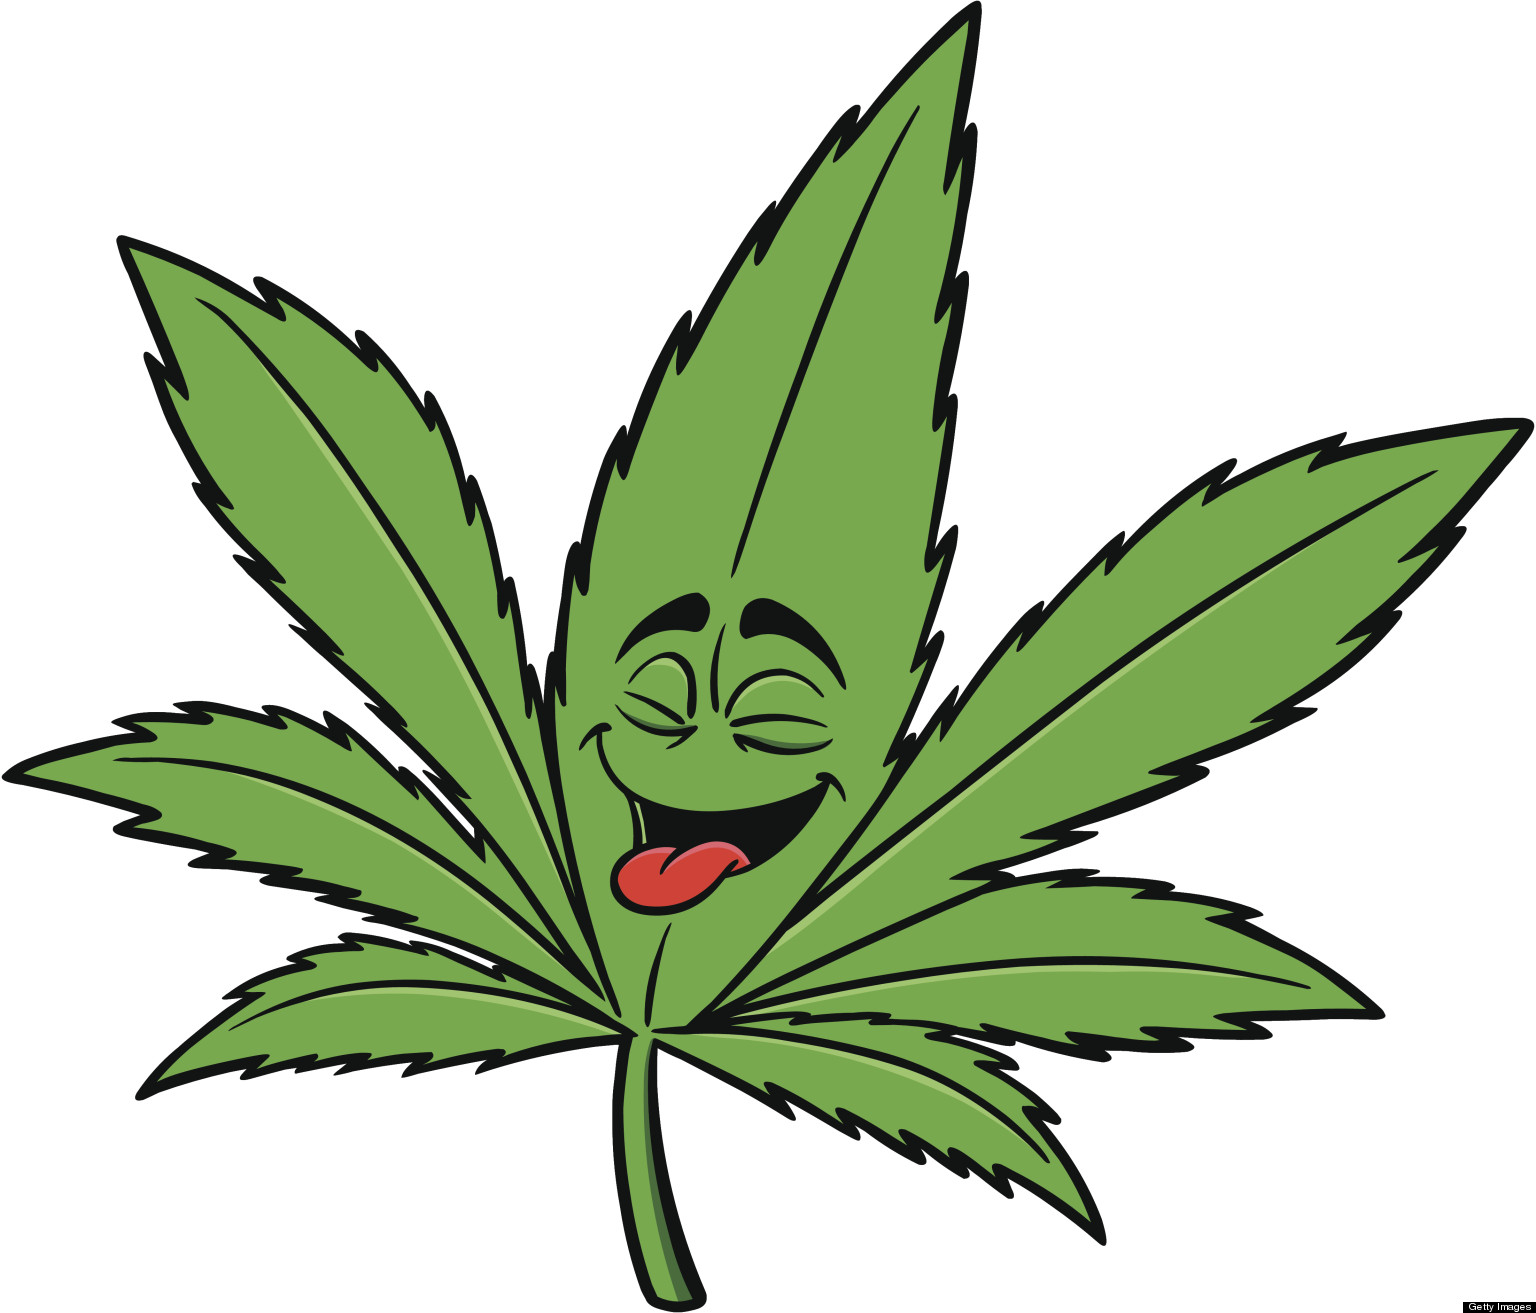 Cannibus clipart svg transparent library Cannabis Leaf Drawing I Image Car Pictures clipart free image svg transparent library